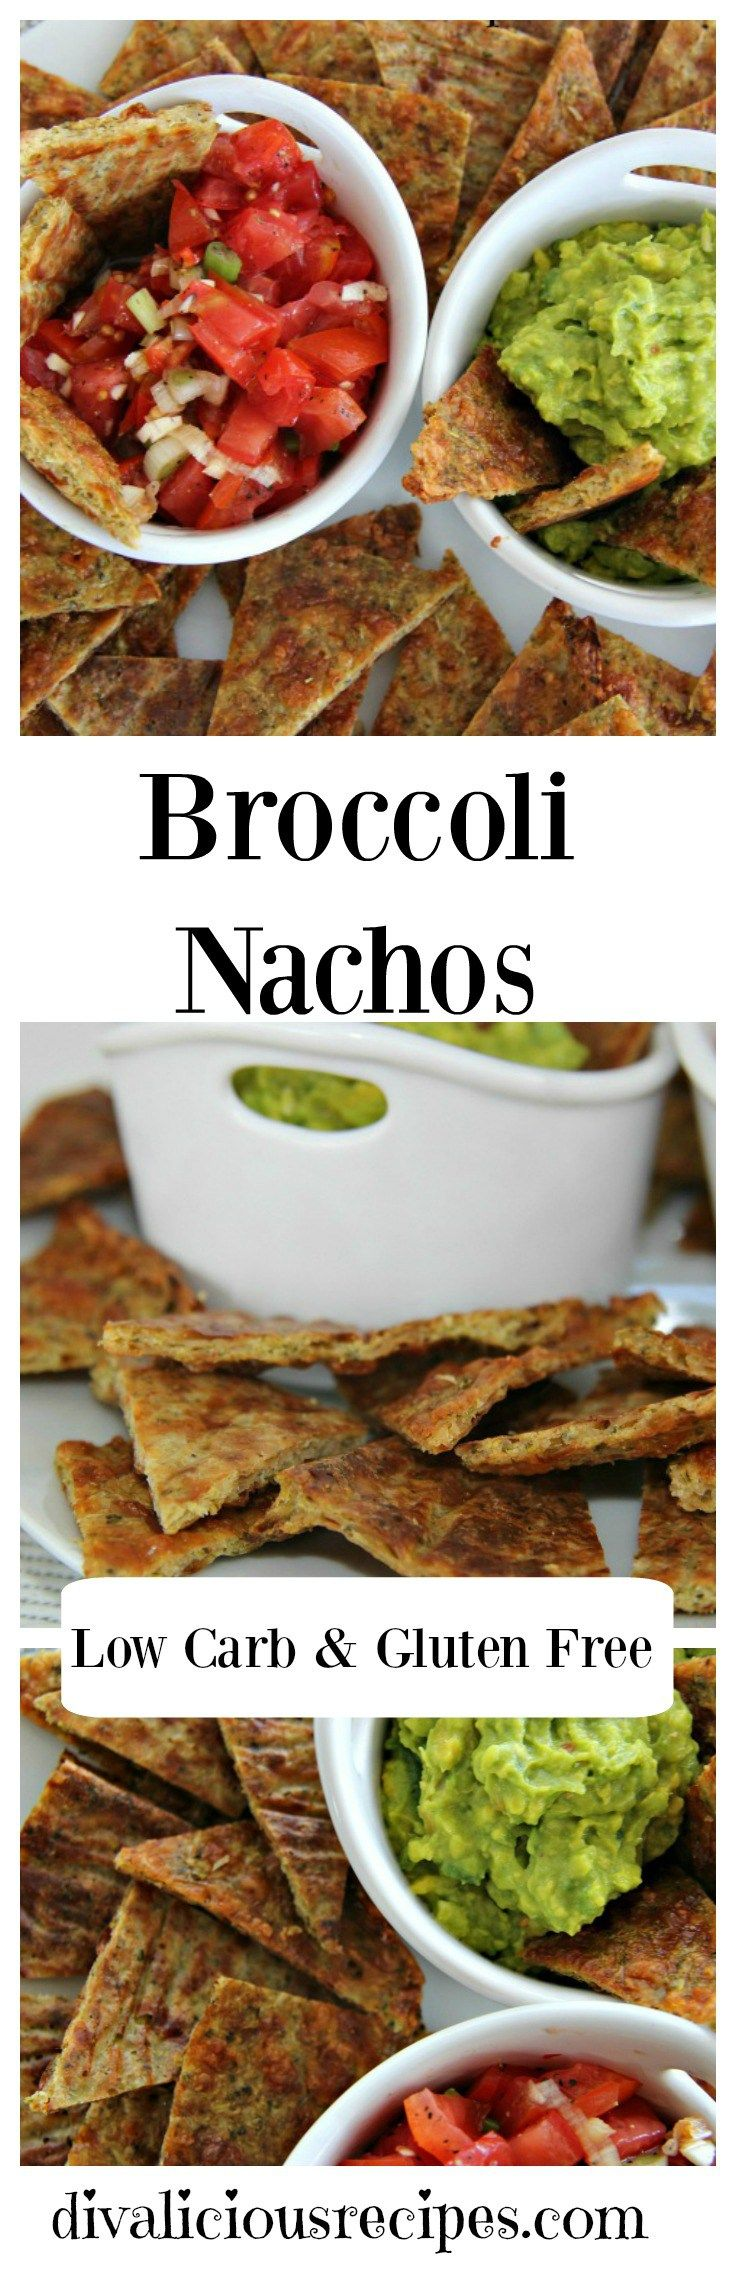 Healthy low carb and gluten free nachos made with broccoli. Crispy, cheesey and perfect served along with a tasty dip.